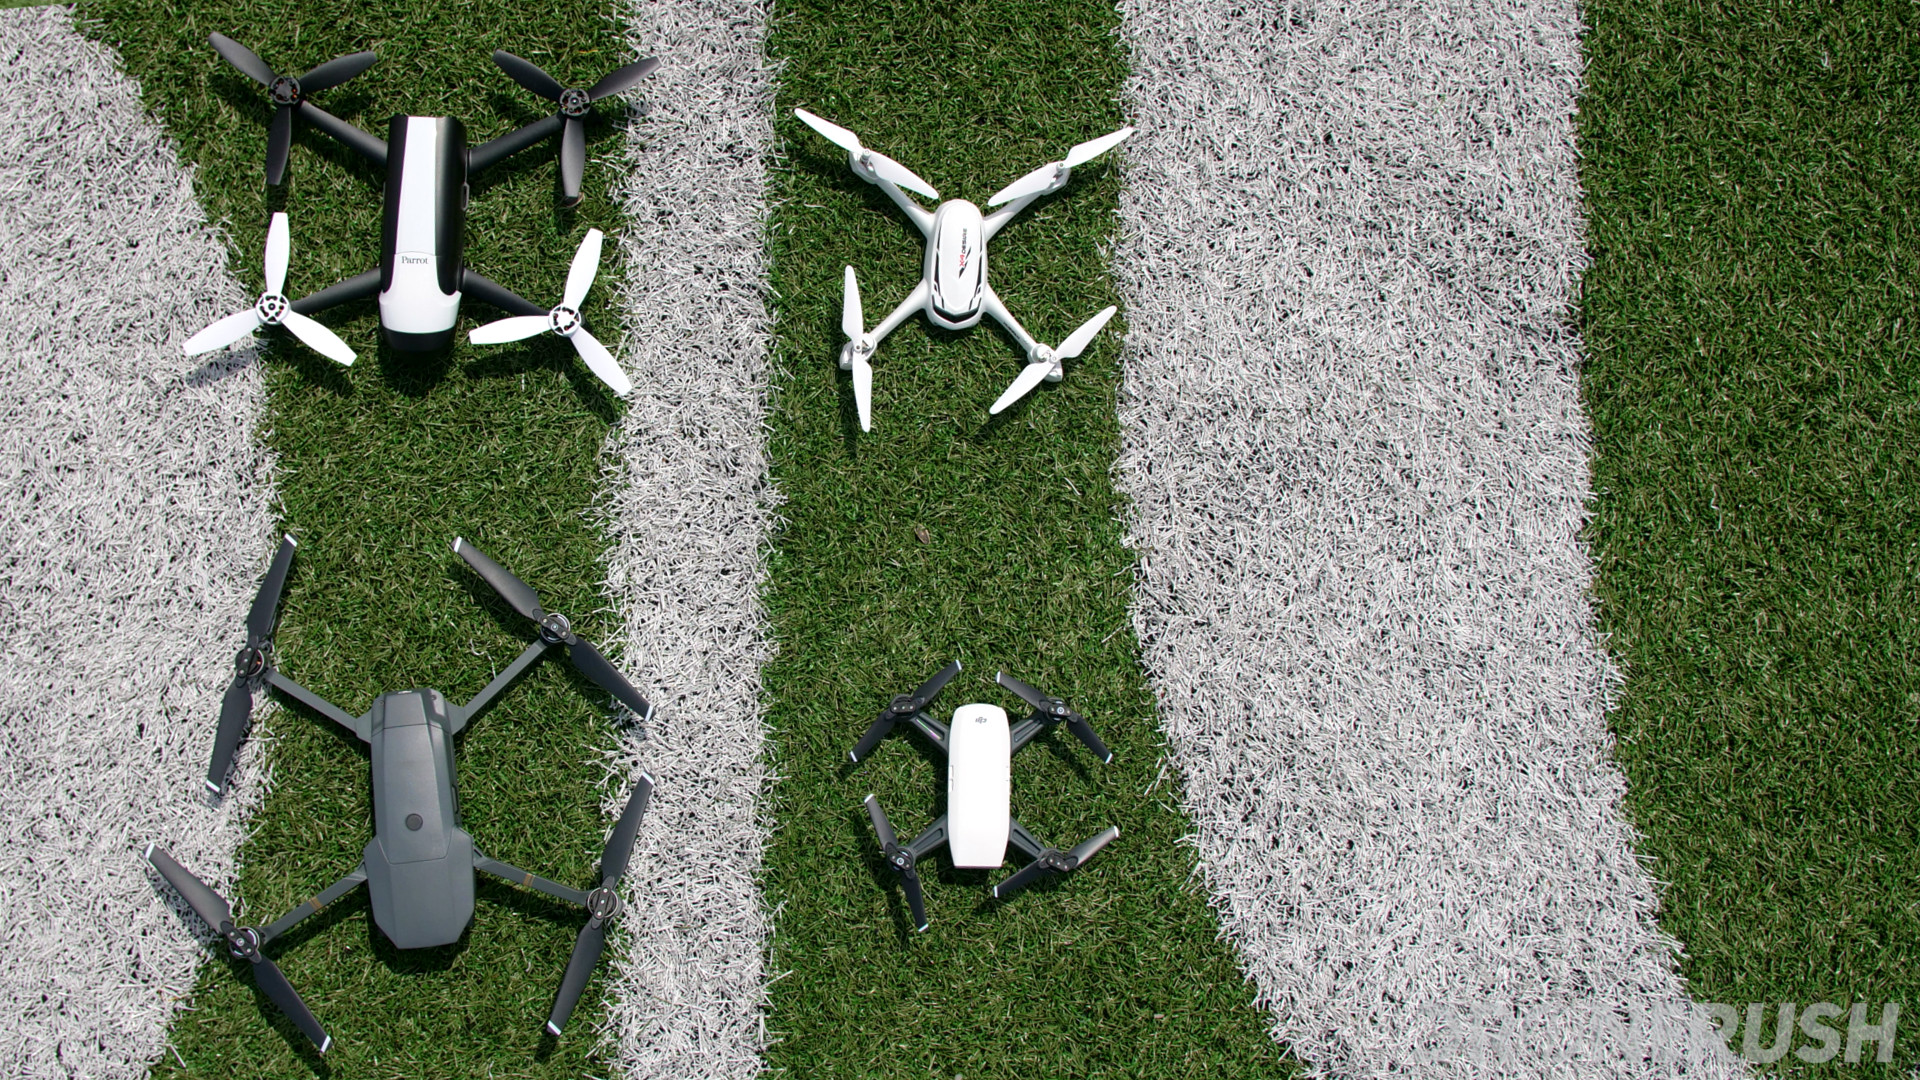 best quadcopter to buy with Best Drone For Beginners on Dji Revolutionizes Personal Flight With New Mavic Pro Drone likewise The Dji Phantom 4 Is The Best Drone I Ve Ever Crashed 1765742746 besides Sci Fi Airplane Mosquito furthermore Wholesale Small Remote Control Planes together with Quadcopter Frames.